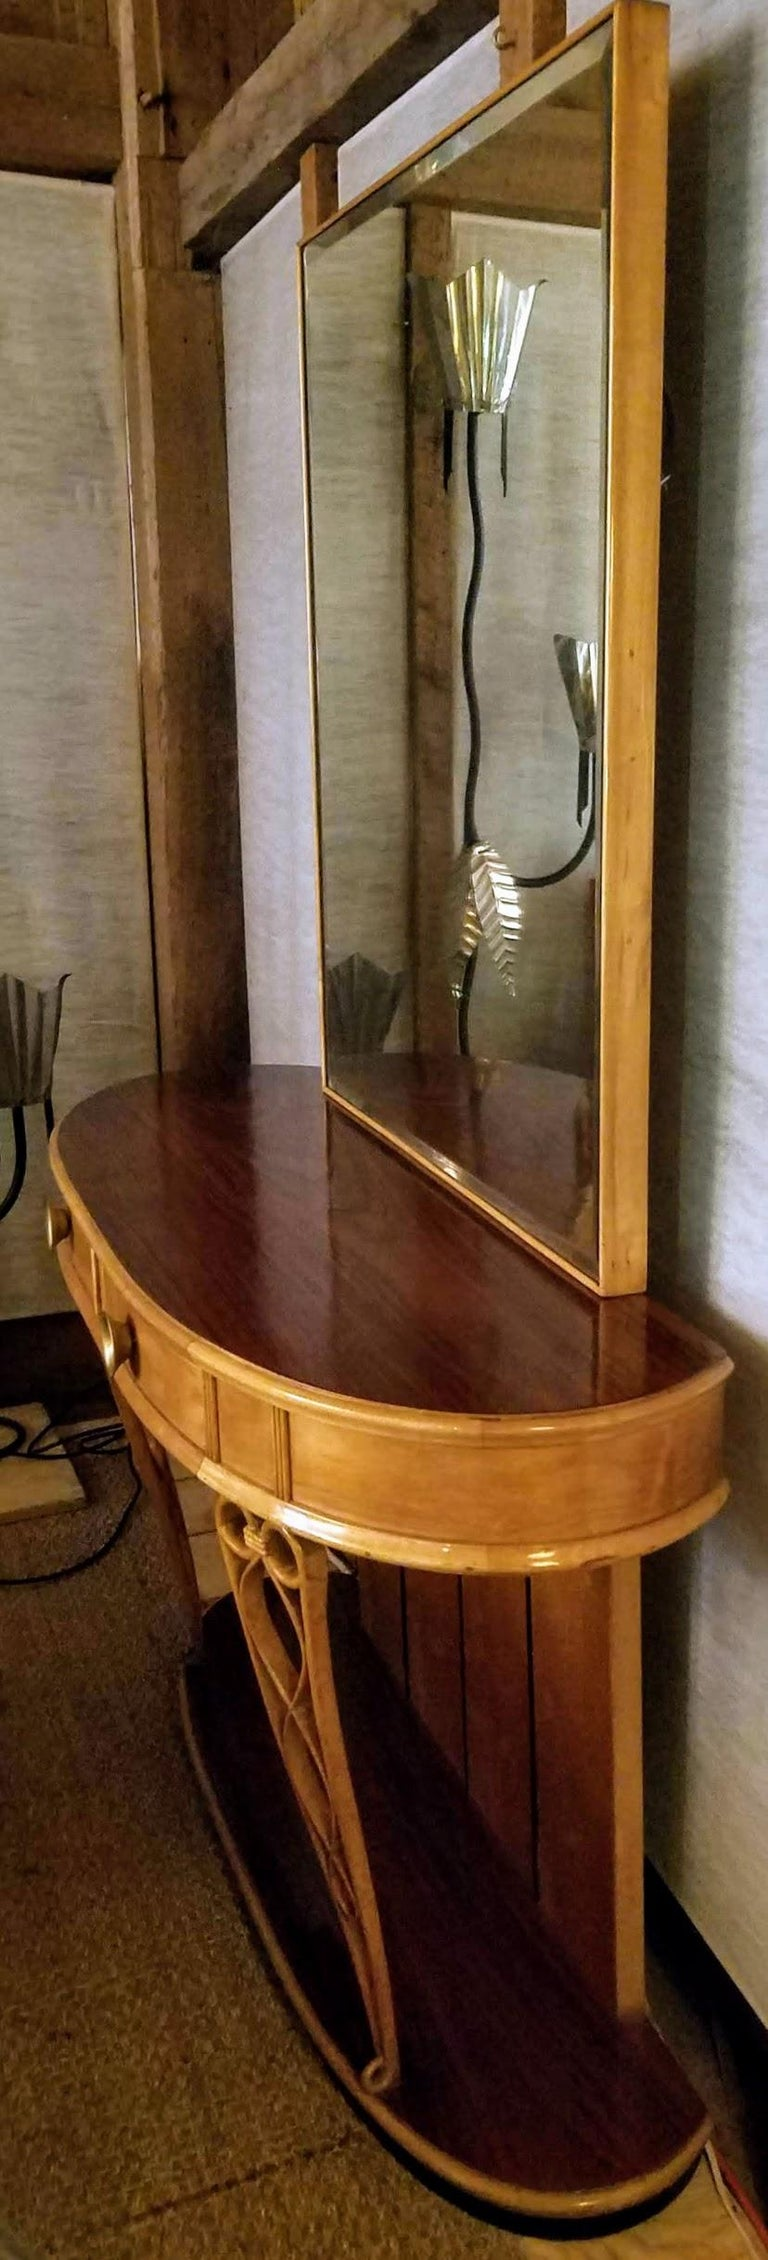 Italian mirrored console from the Florentine studio of Atilio Fagioli dating from the 1940s. Stylized arabesques of ice cream cone supports of cared maple provide calligraphic decoration to this neoclassical piece executed in Rosewood and Amboyna